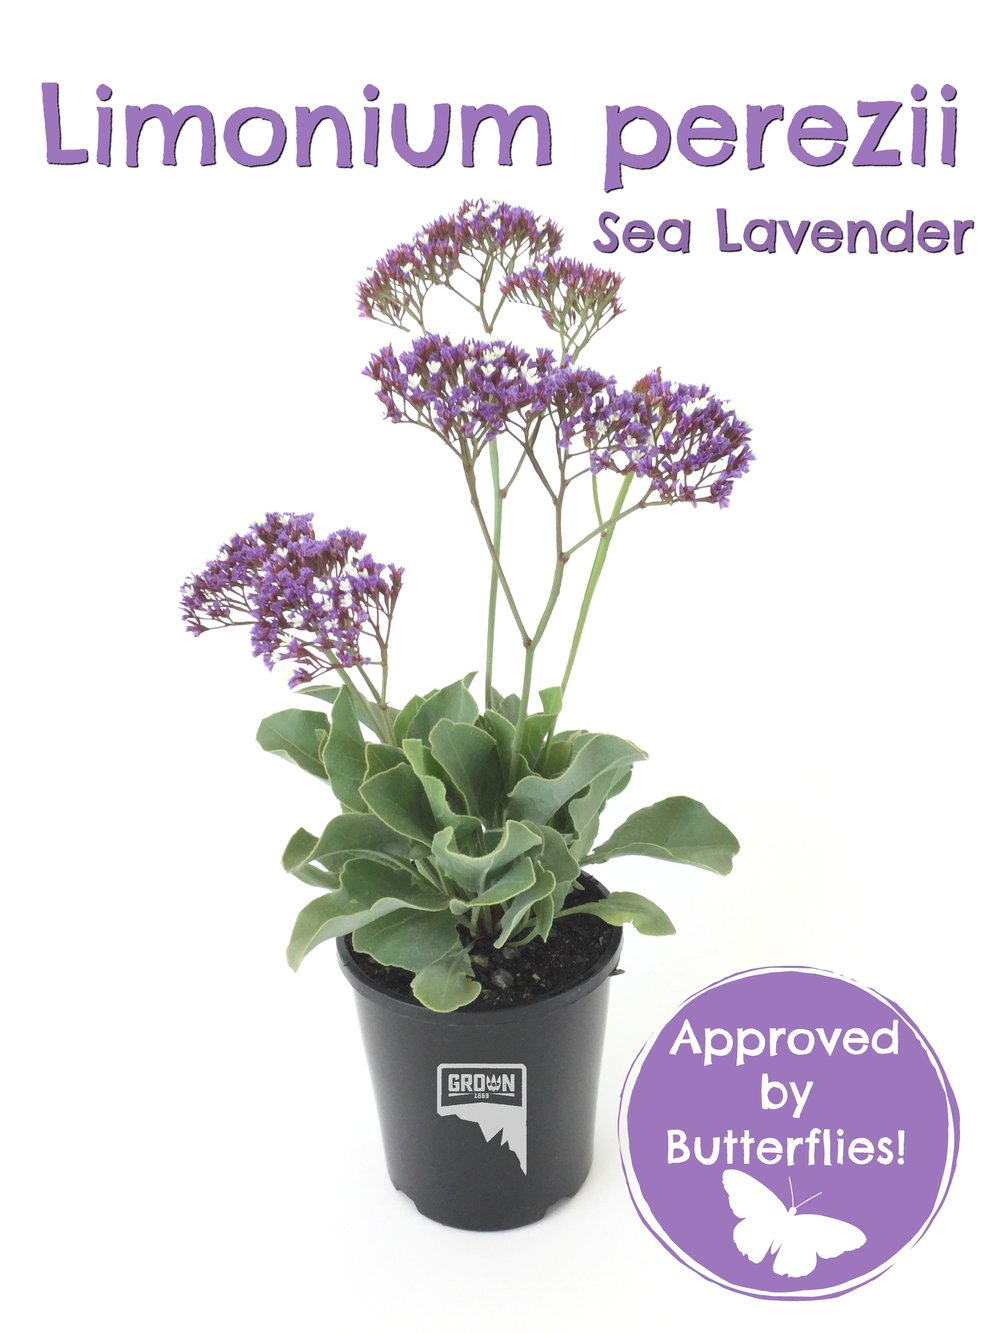 Limonium butterfly approved.jpg